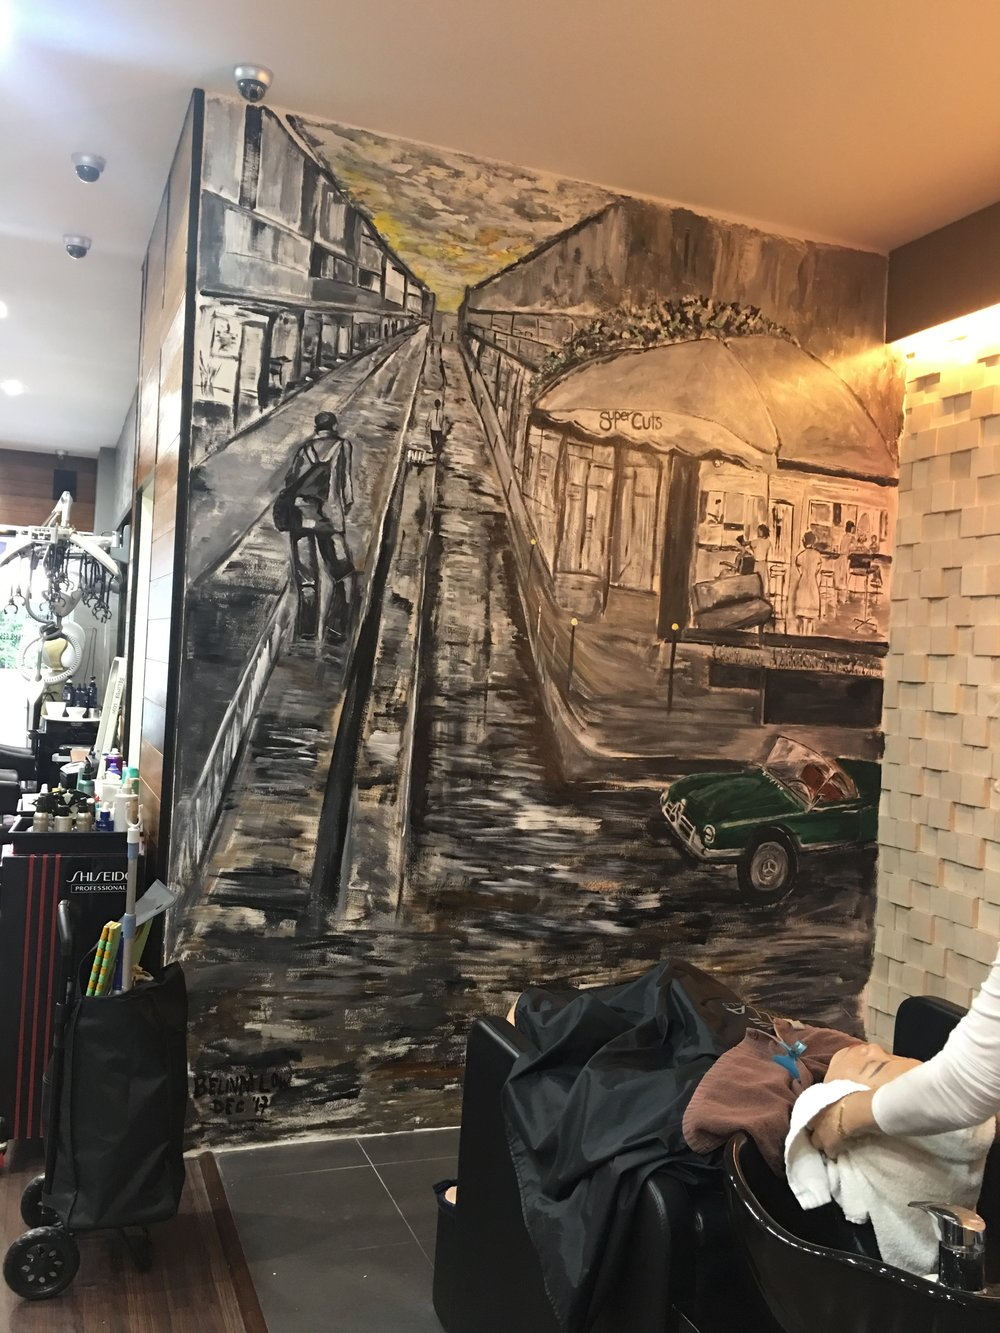 After - at the washing area. Hopefully the customers can stare and admire the details on the wall while having their hair washed.